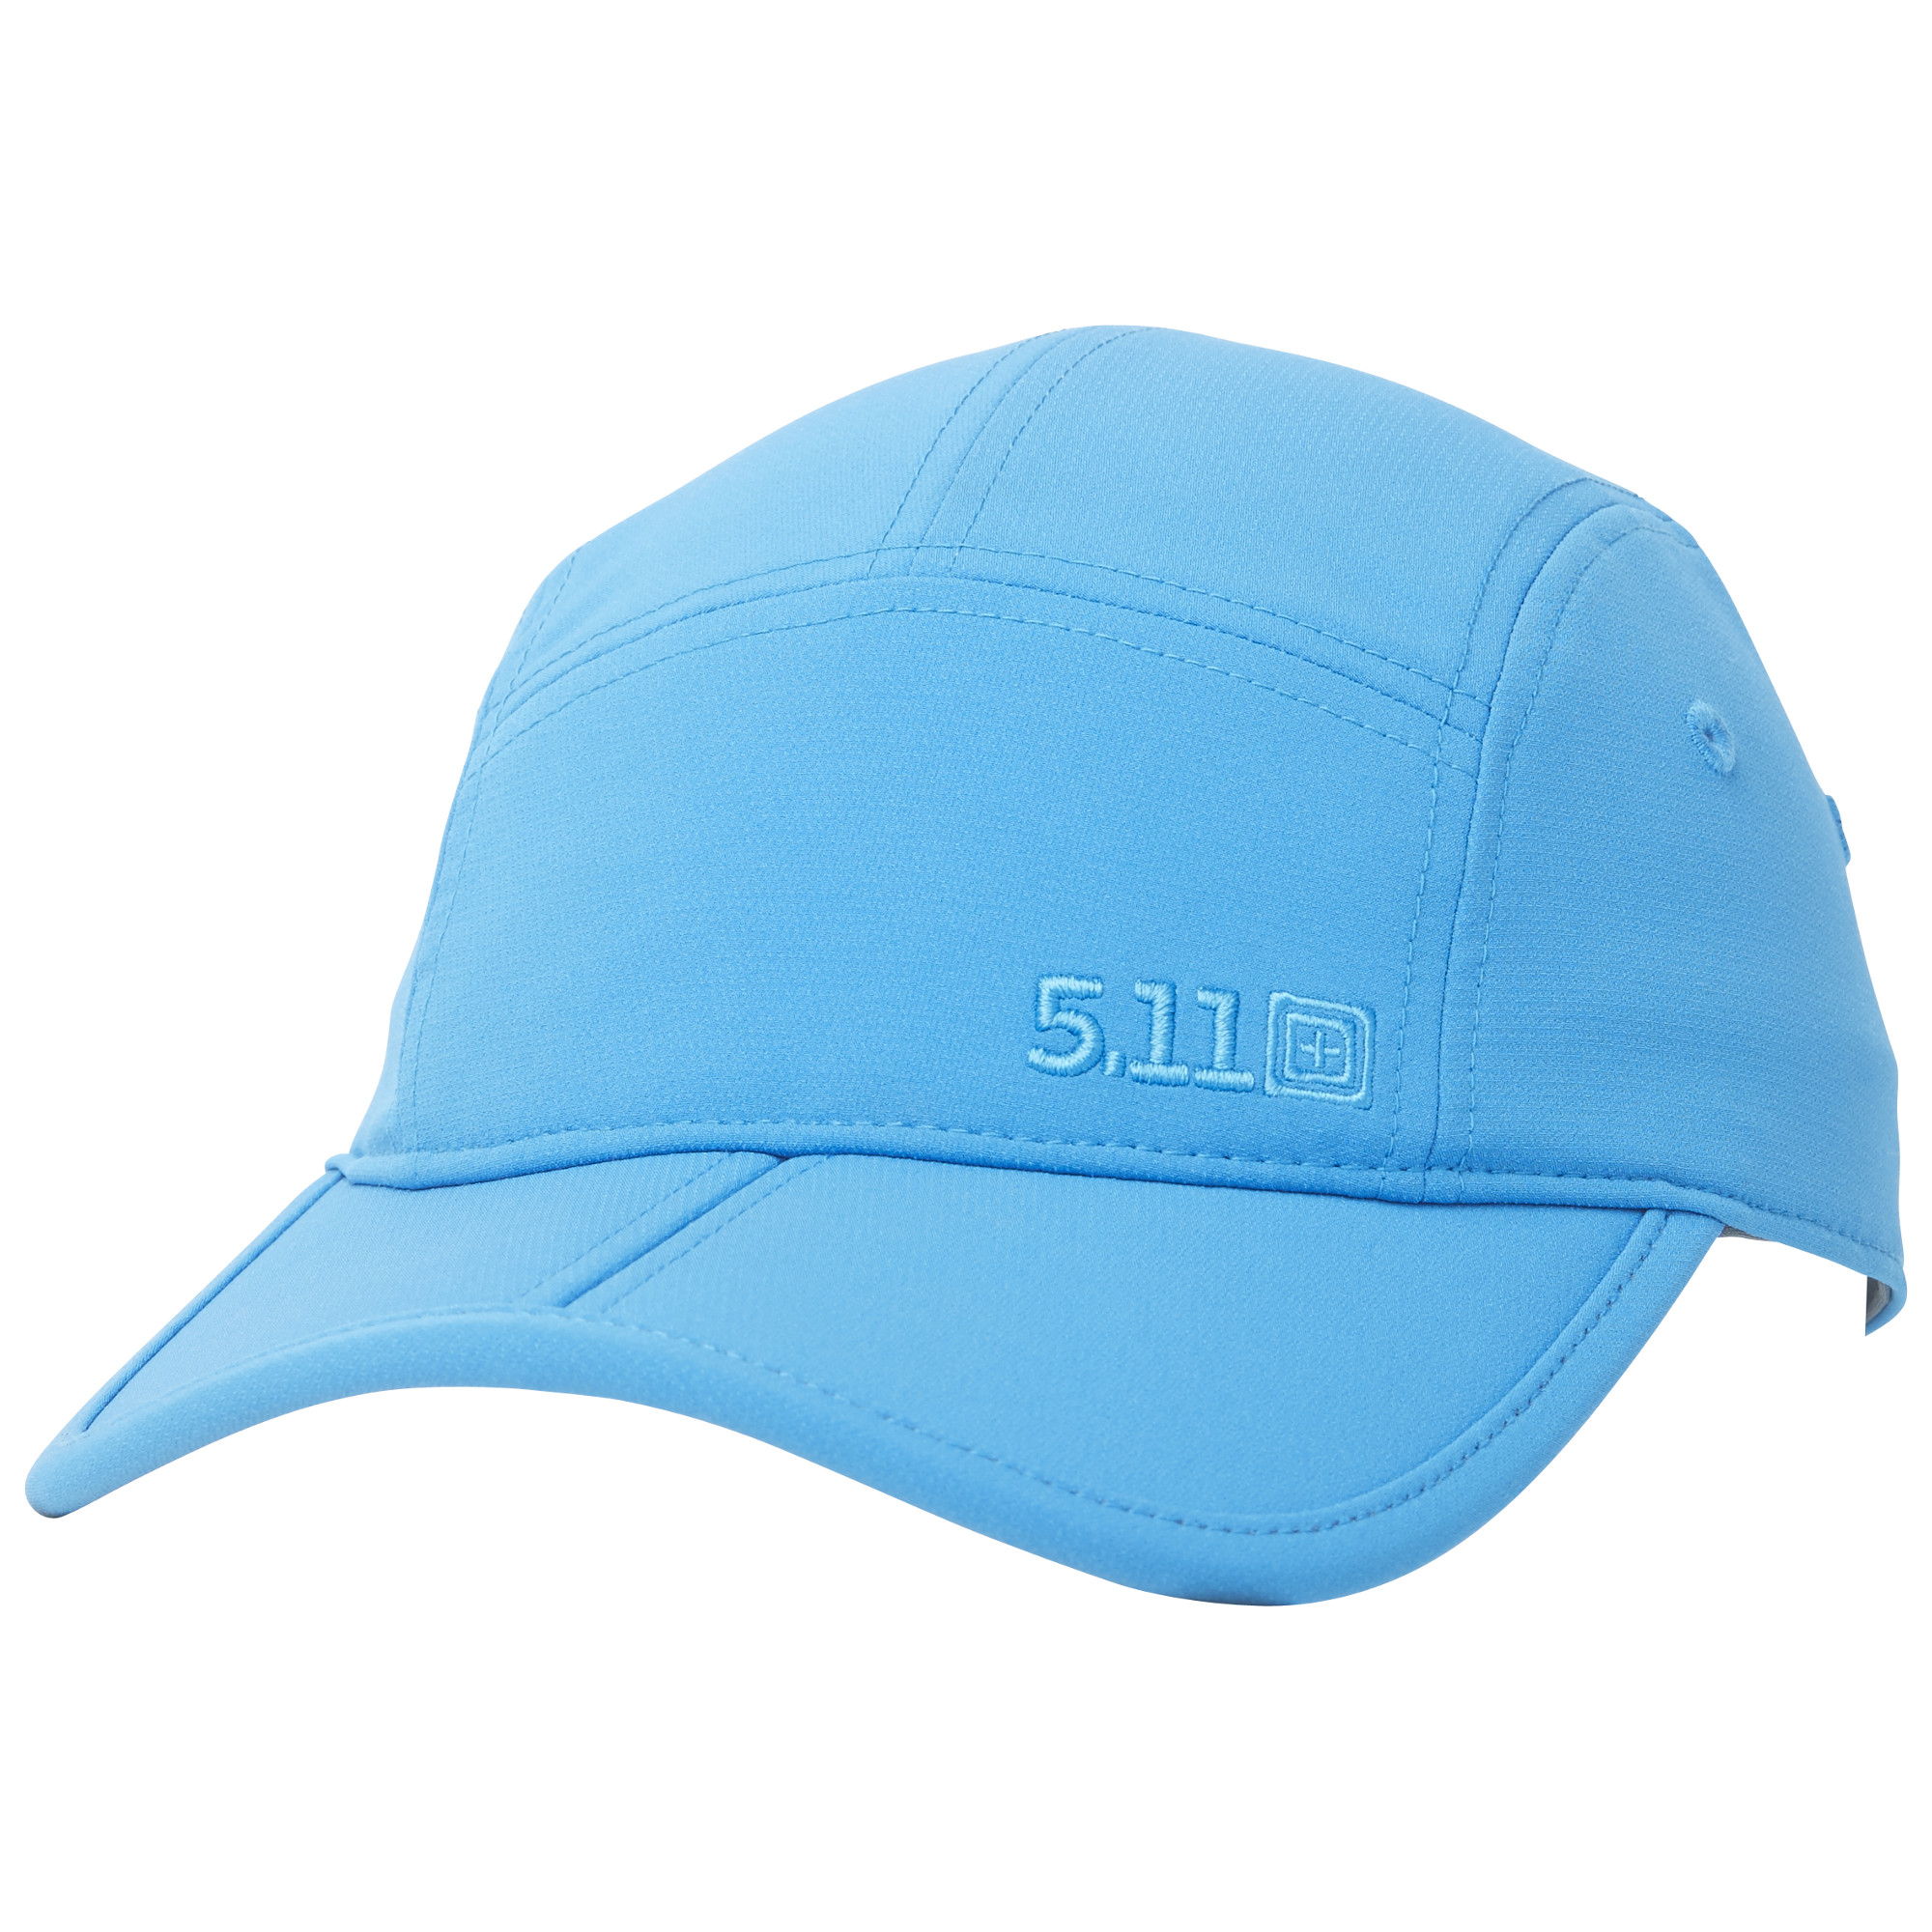 5.11 Tactical Men Bill Fold Cap (Blue)